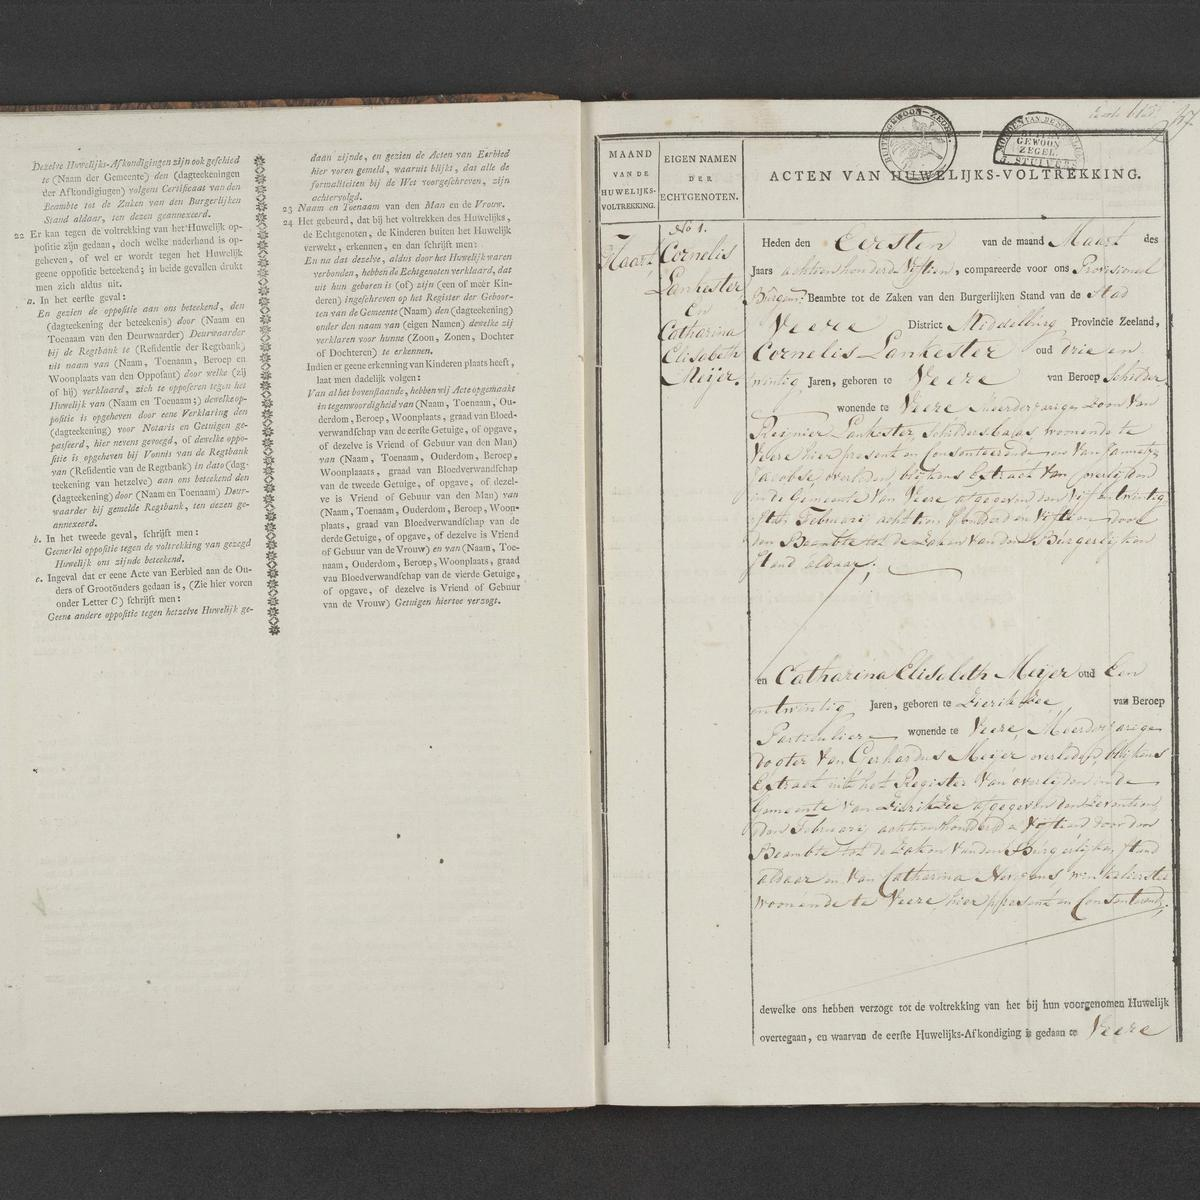 Civil registry of marriages, Veere, 1815, record 1